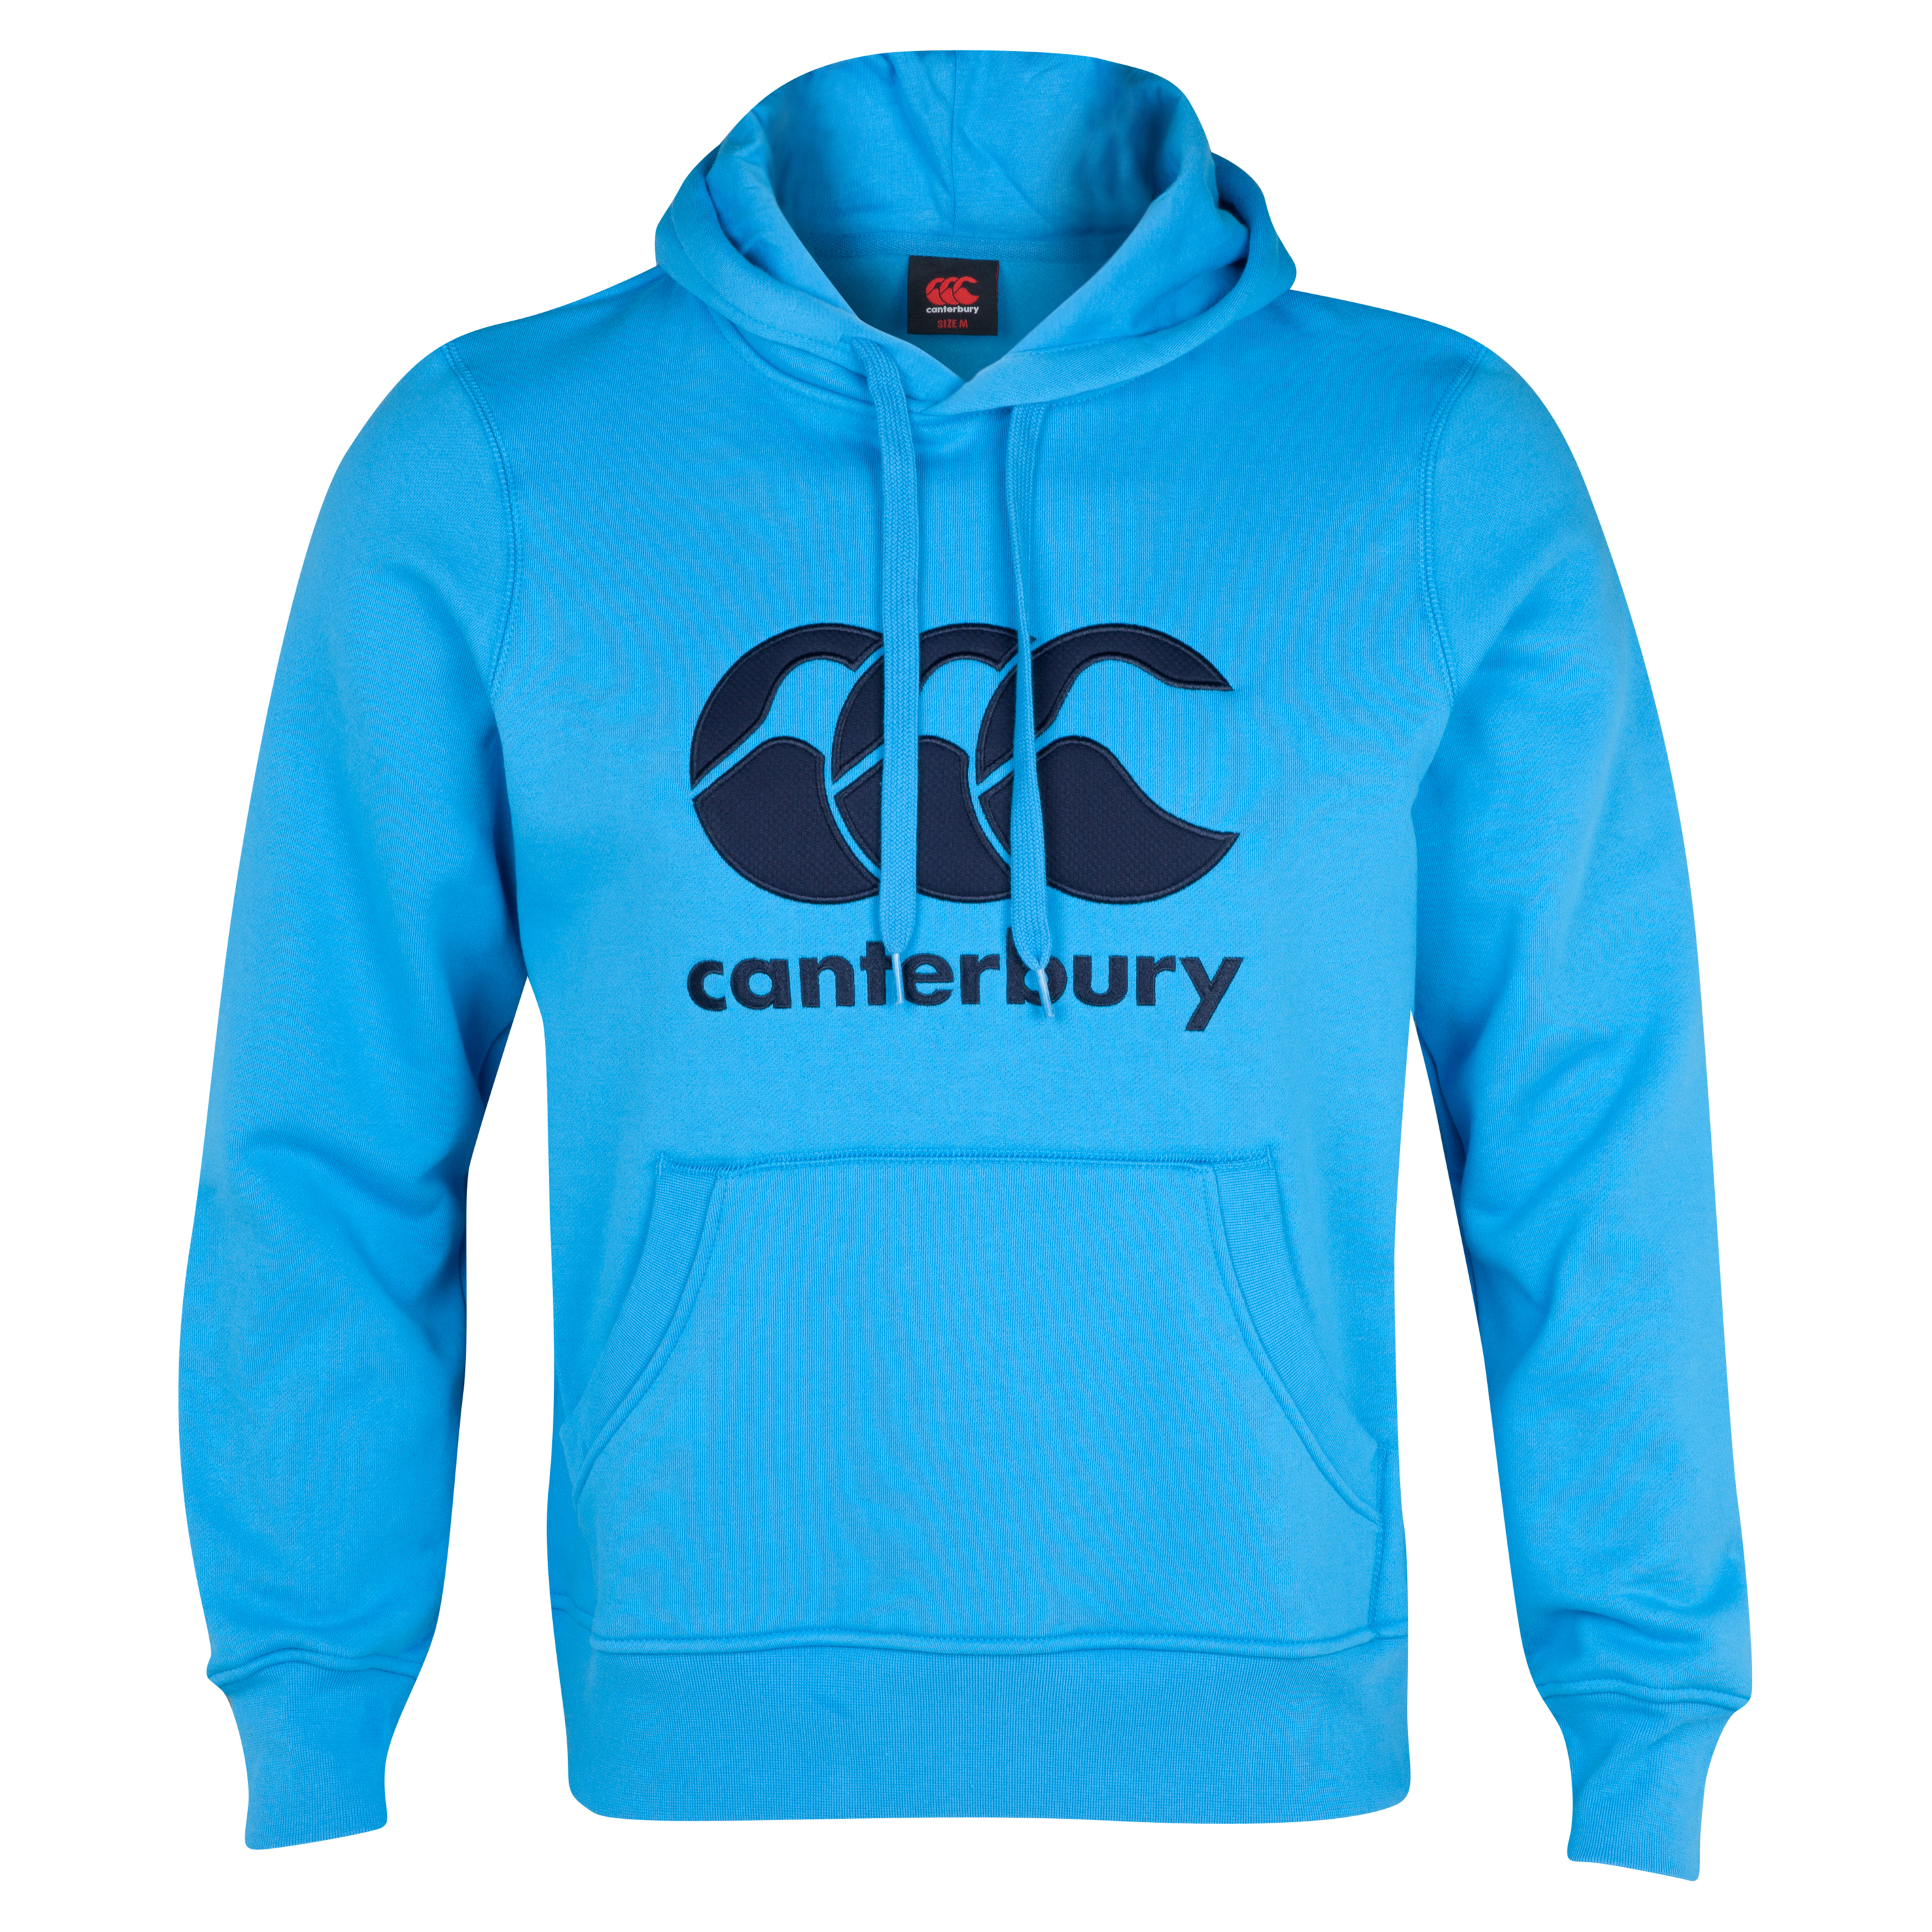 Canterbury Classic Hoody - Malibu Blue/Navy